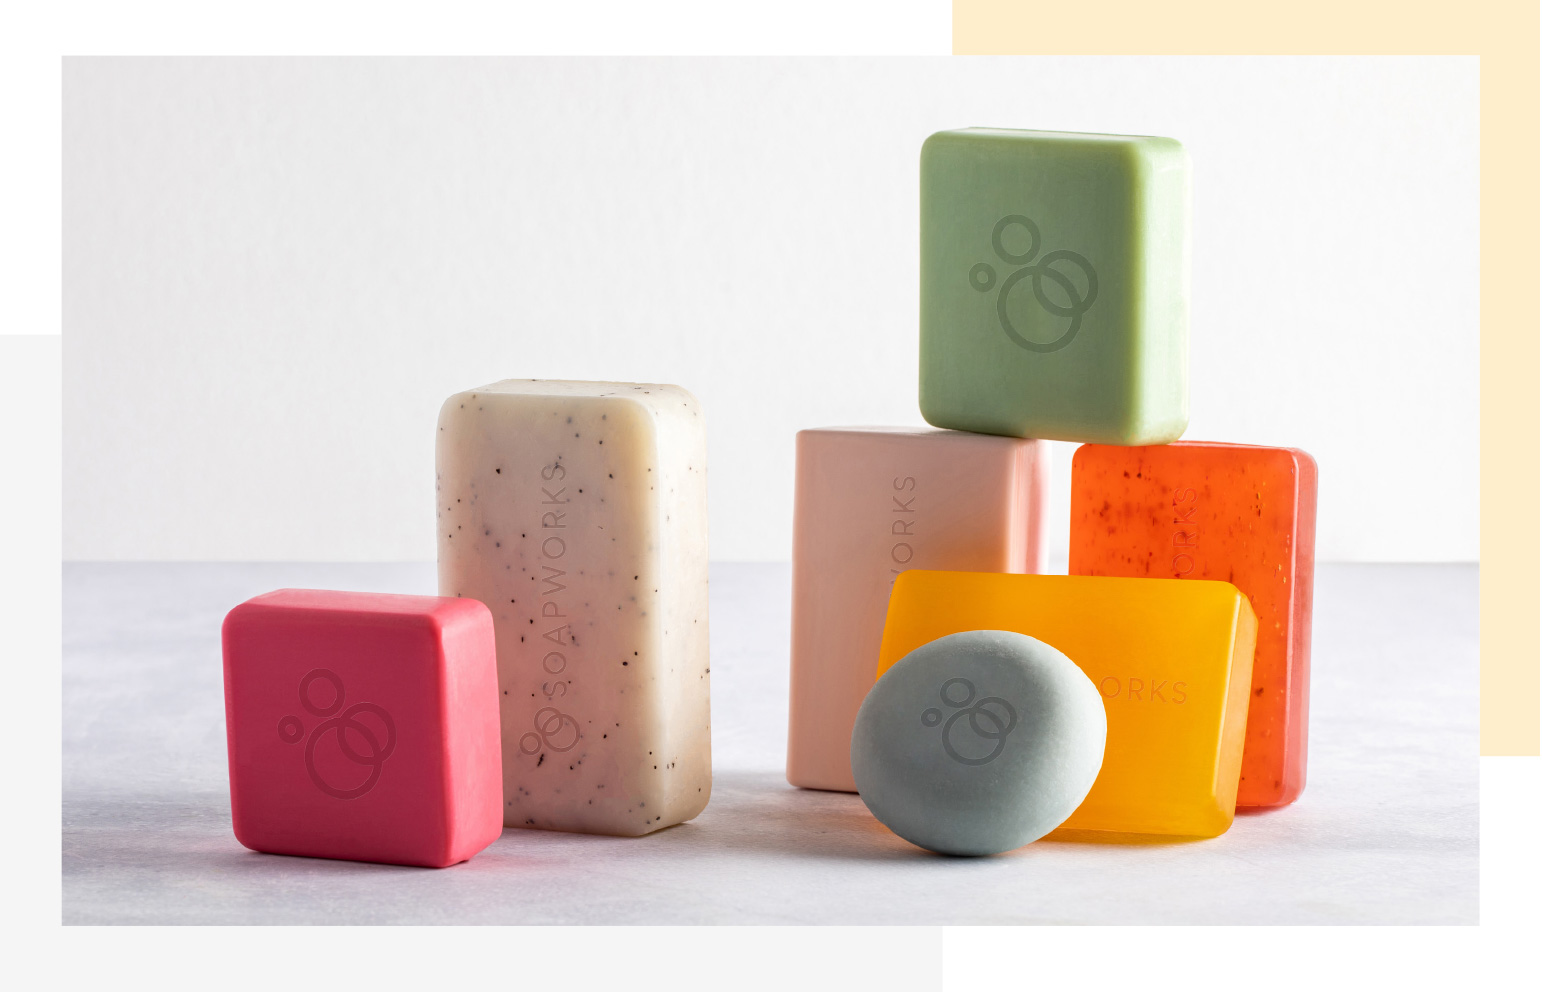 Selection of opaque and translucent soaps in different shapes stacked together